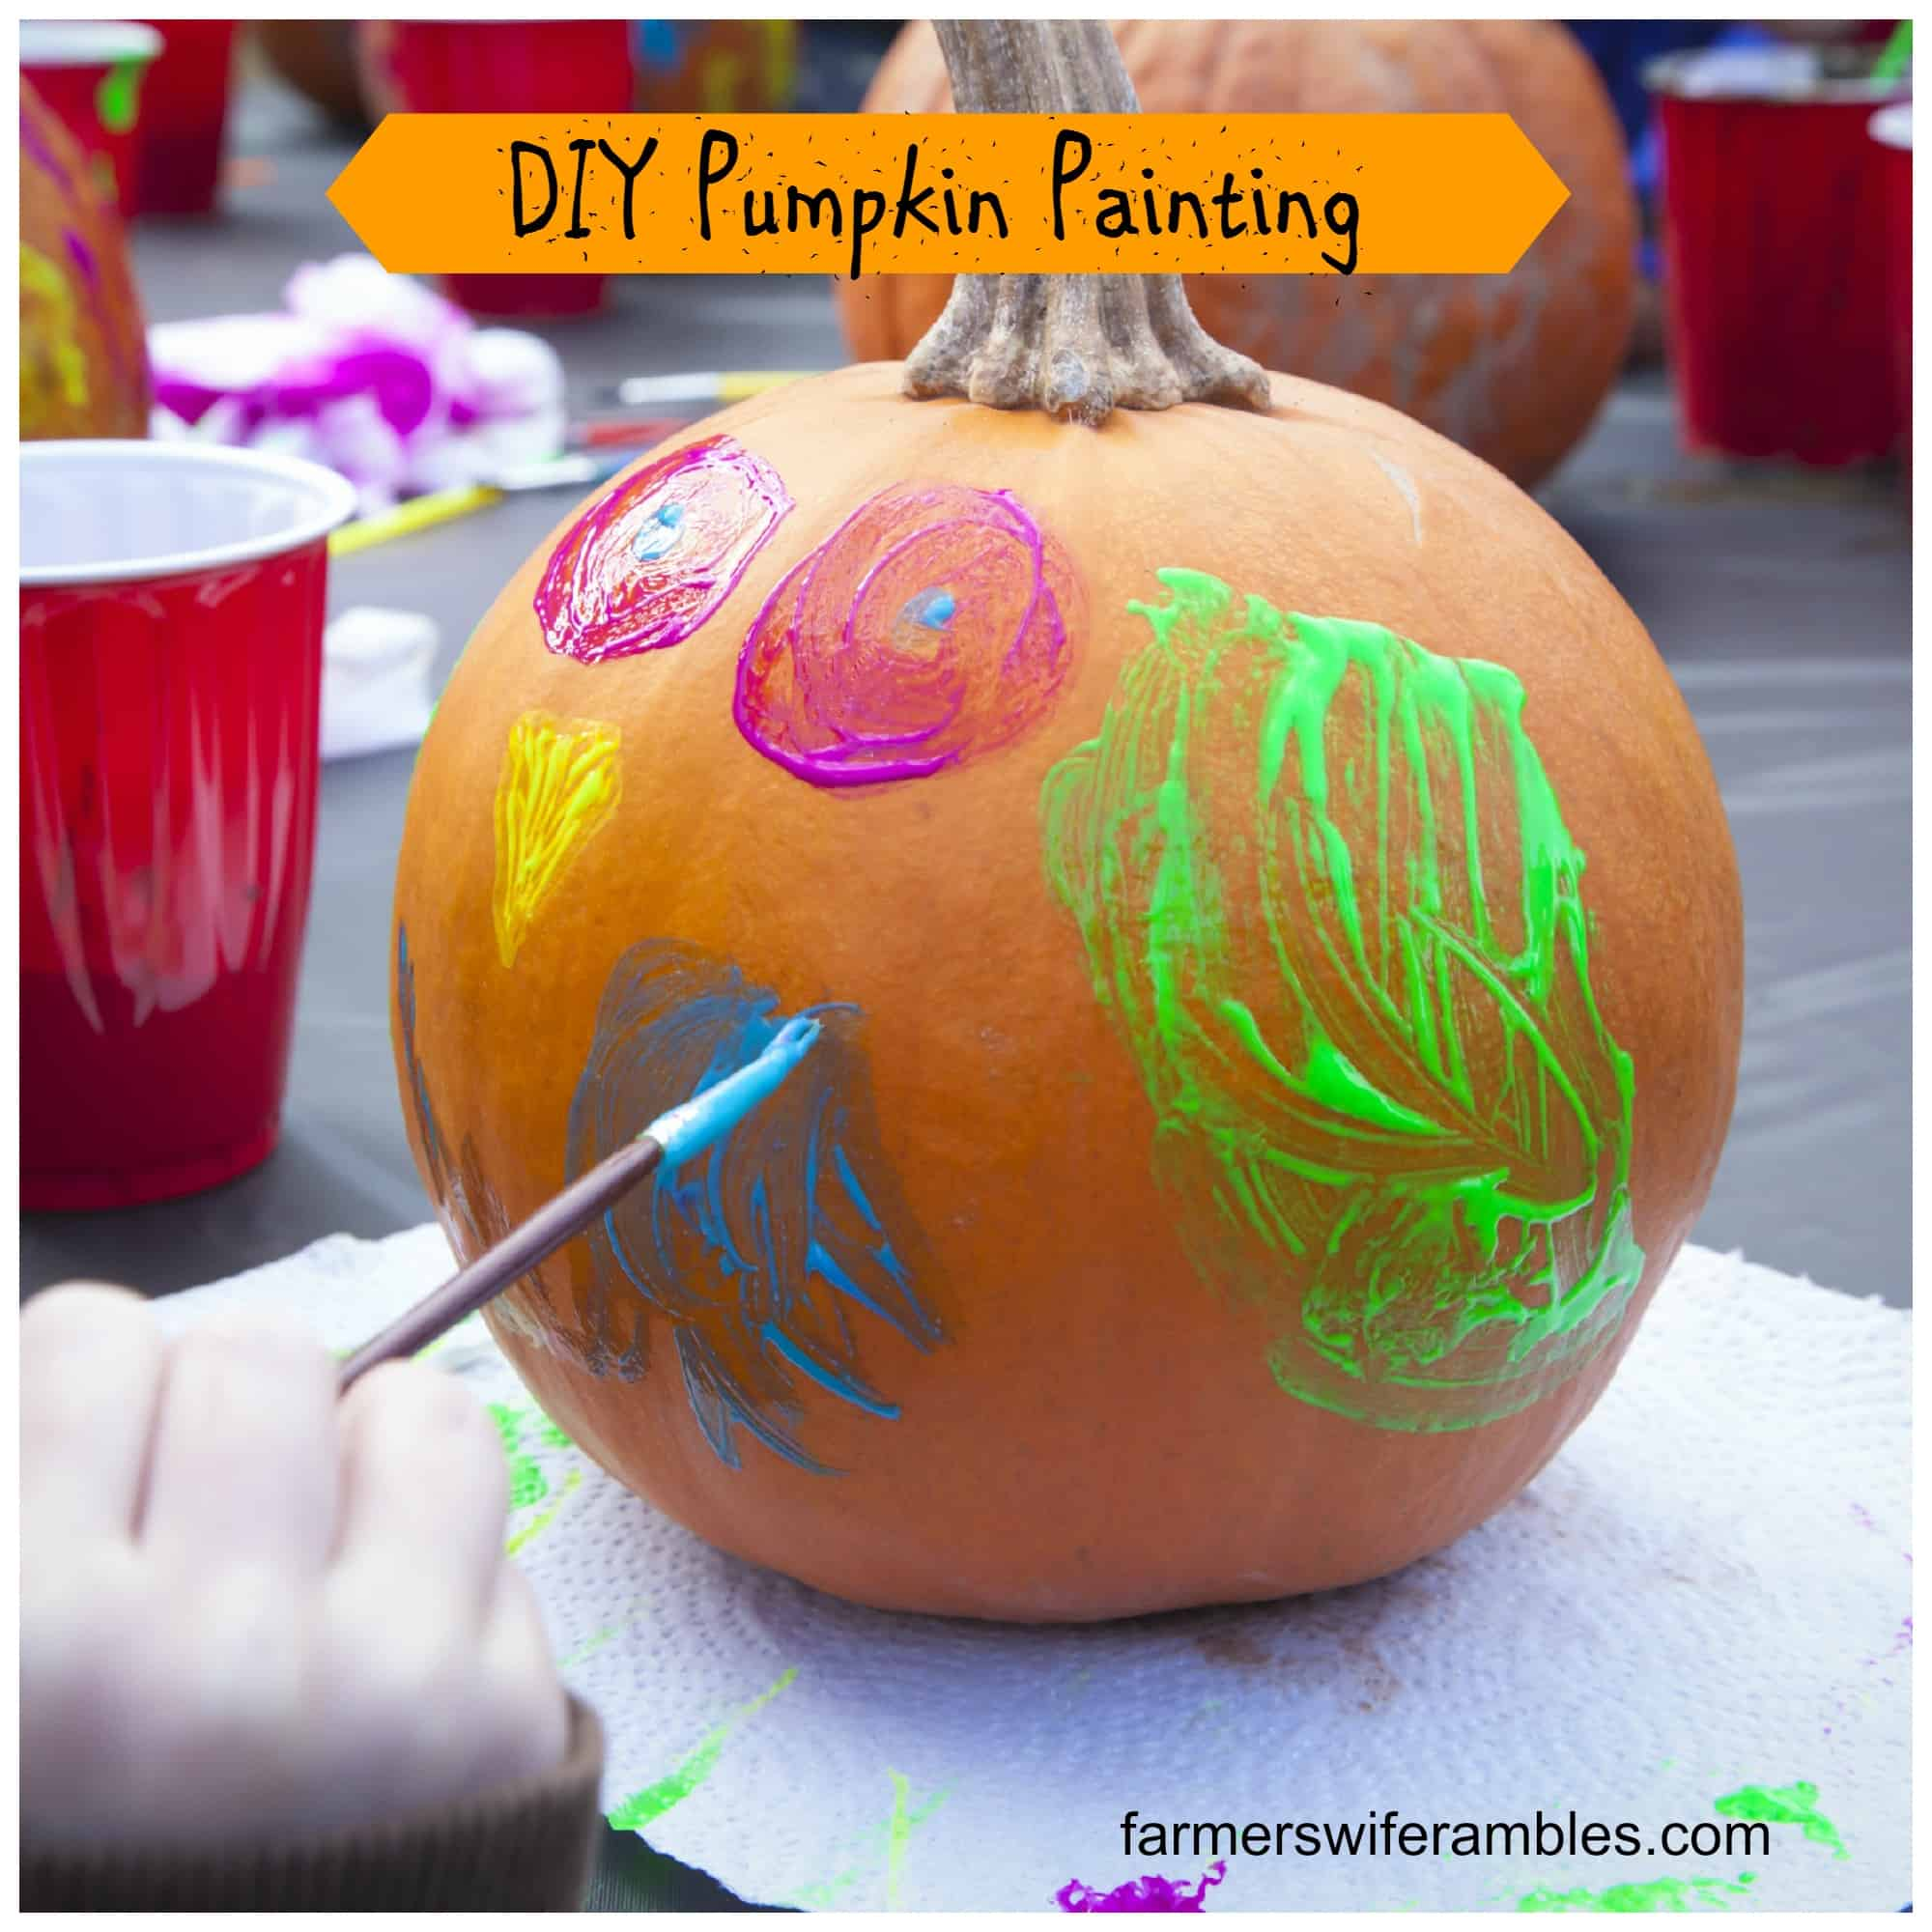 diy-pumpkin-painting